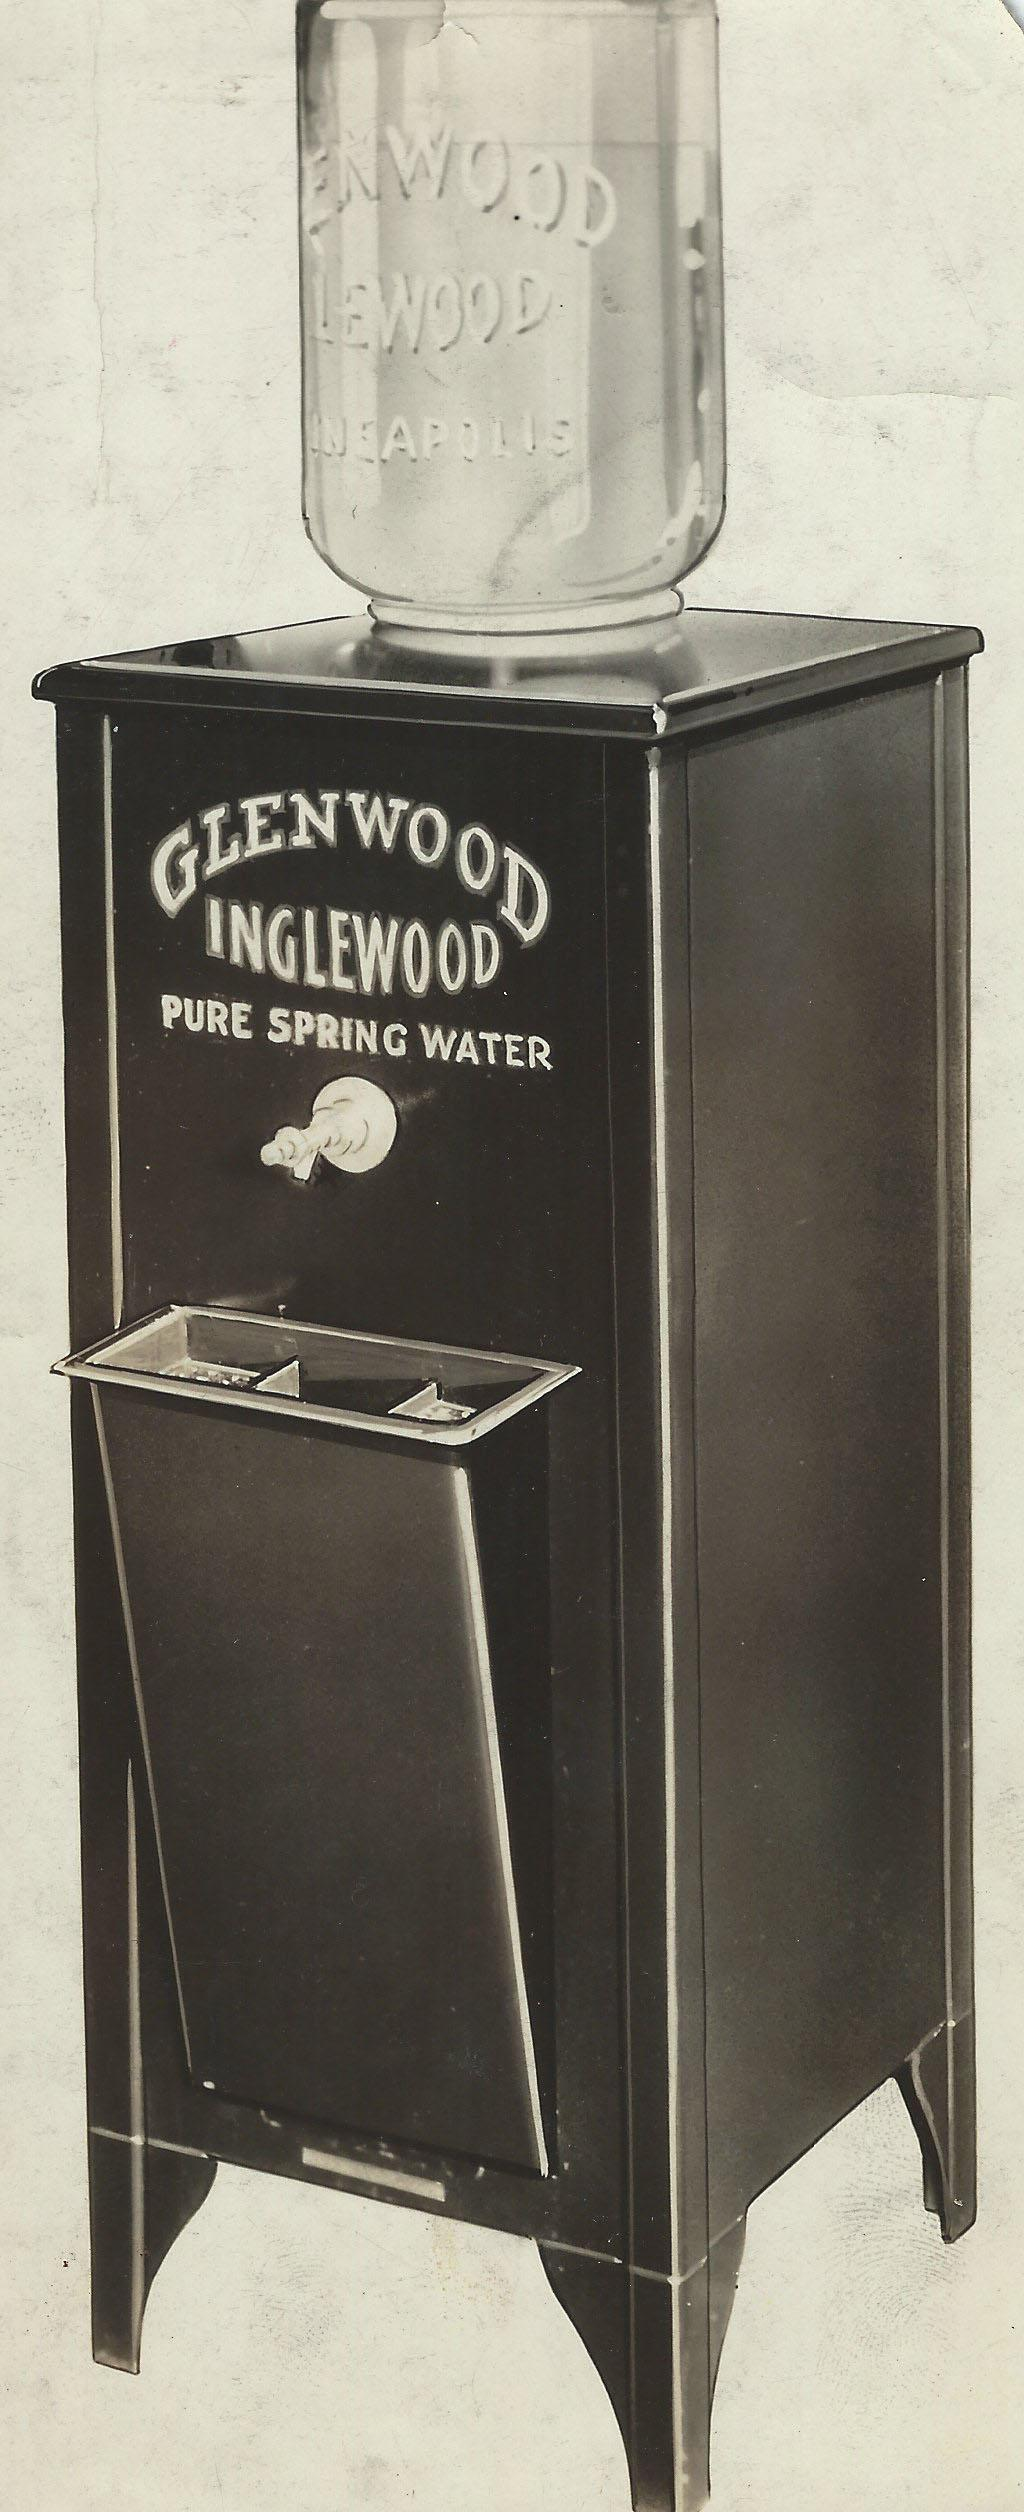 An old-fashioned water cooler from the Glenwood Inglewood Water Company.